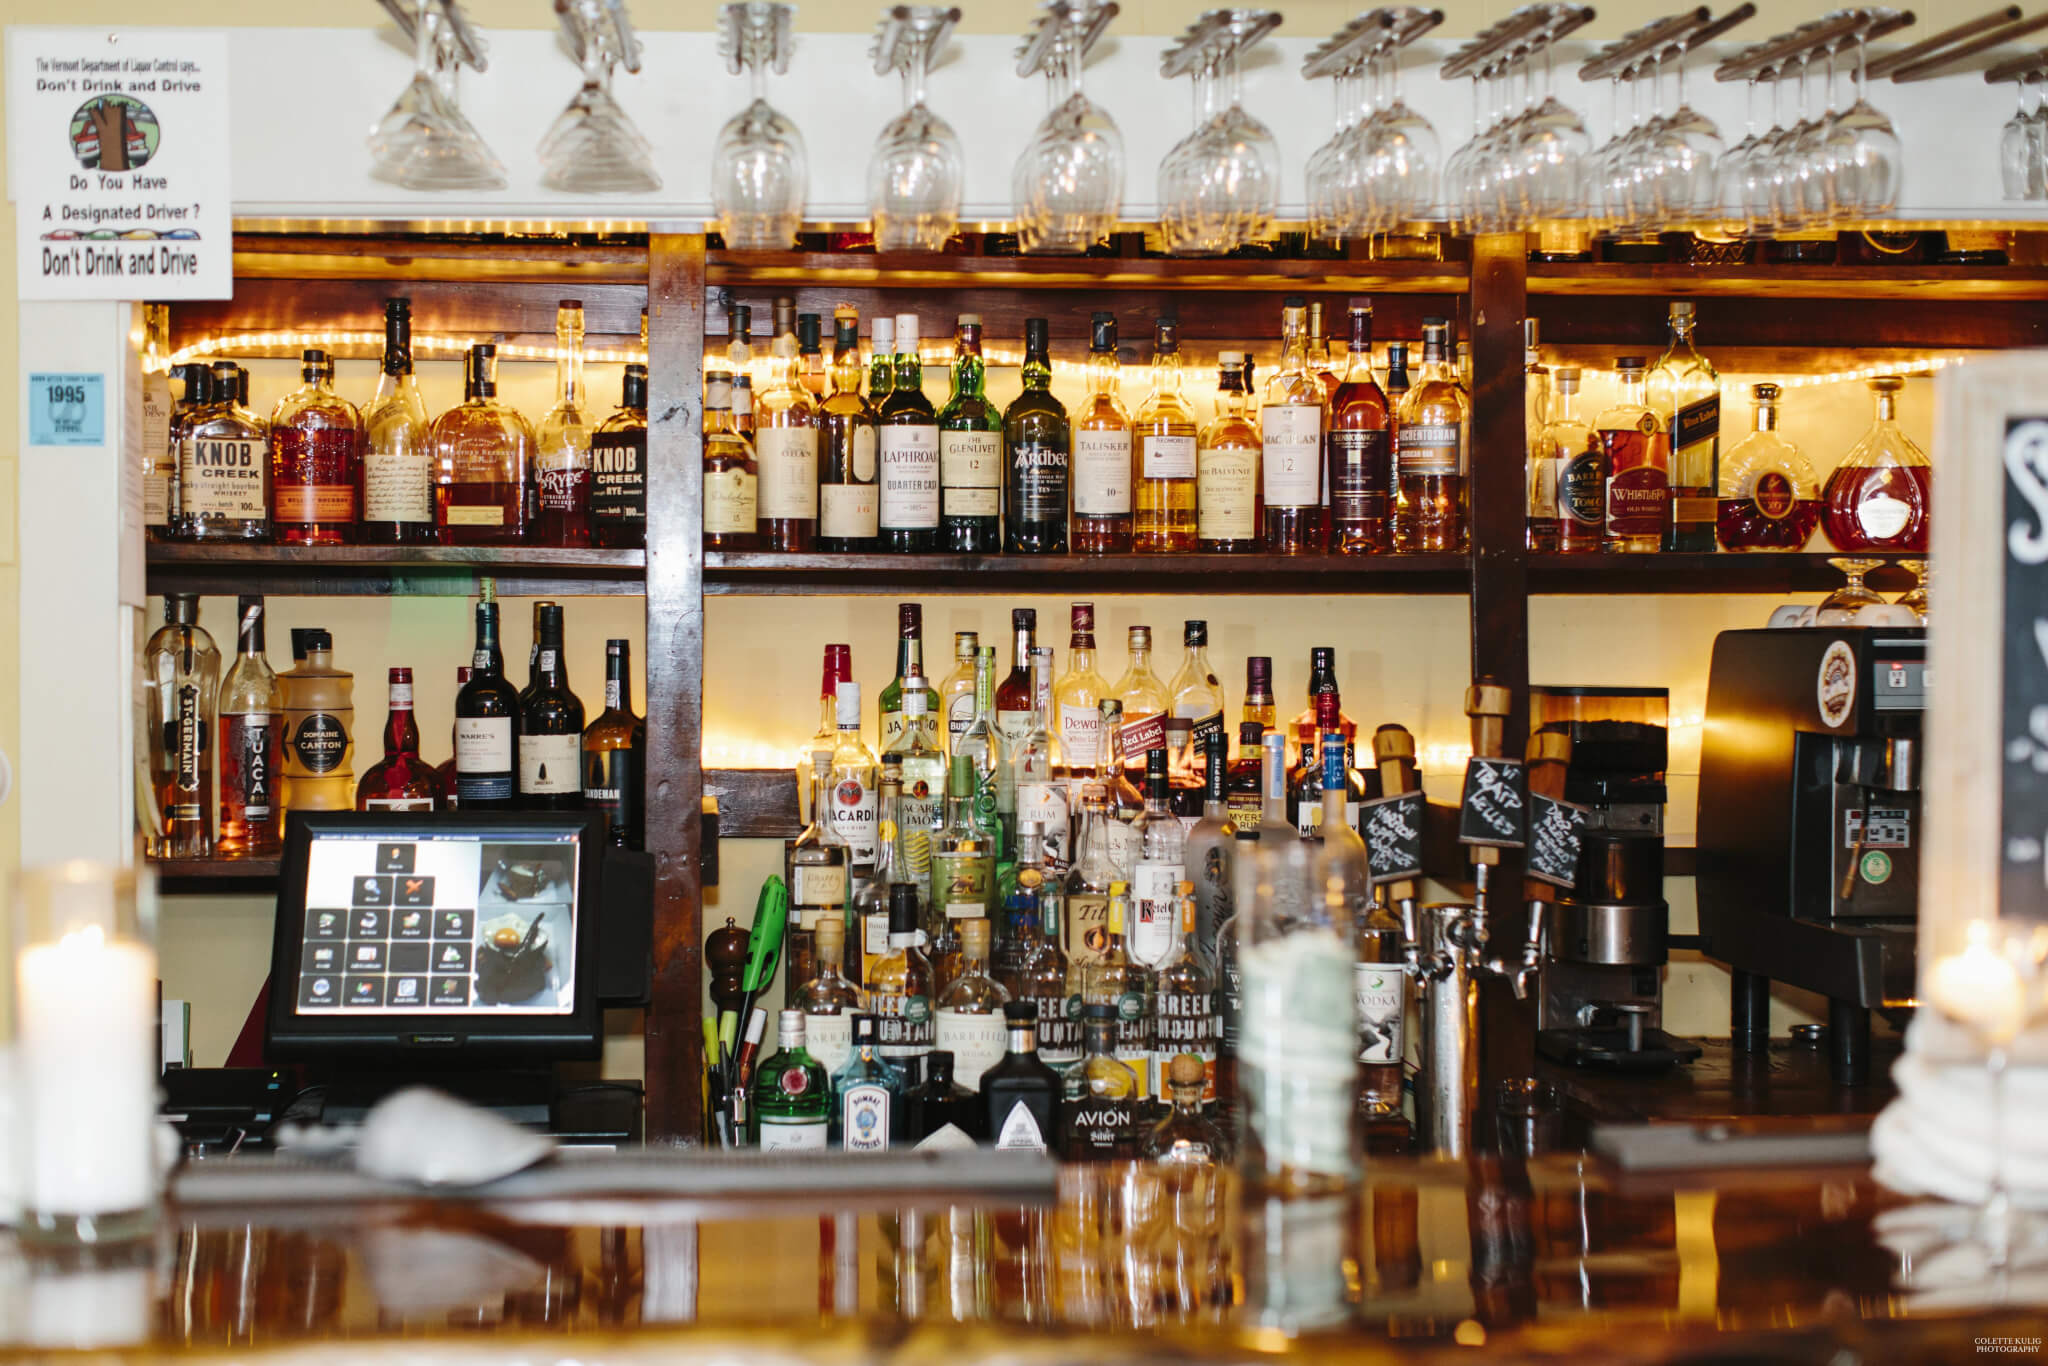 Bottles of liquor and mixers at the Red Clover Tavern Bar. Clean glasses hang above the bar.